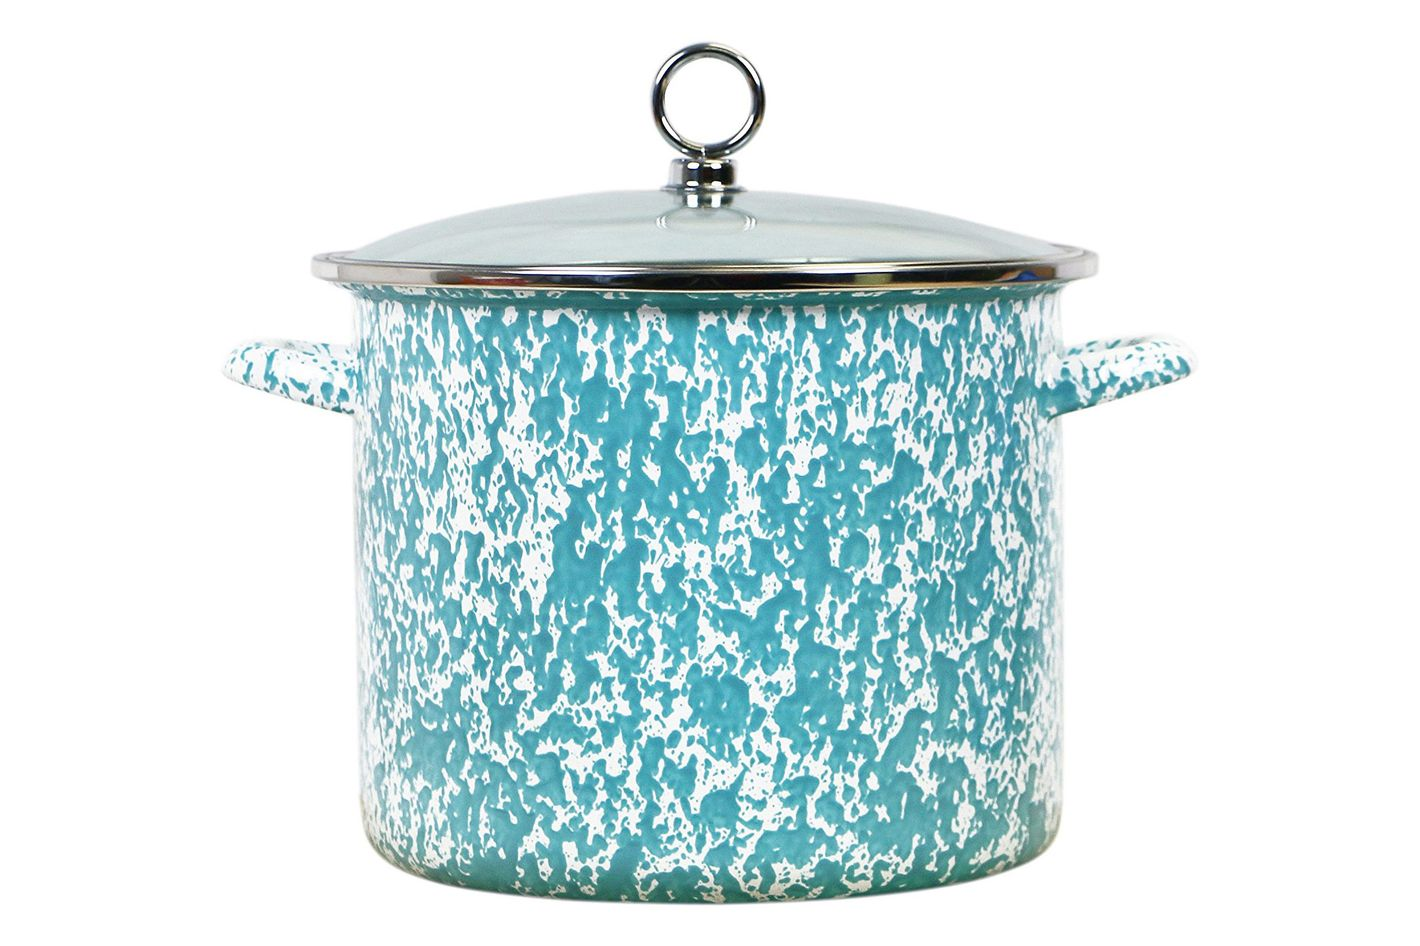 Calypso Basics by Reston Lloyd Vintage Marble Enamel on Steel Stockpot With Glass Lid, 8-Quart, Turquoise